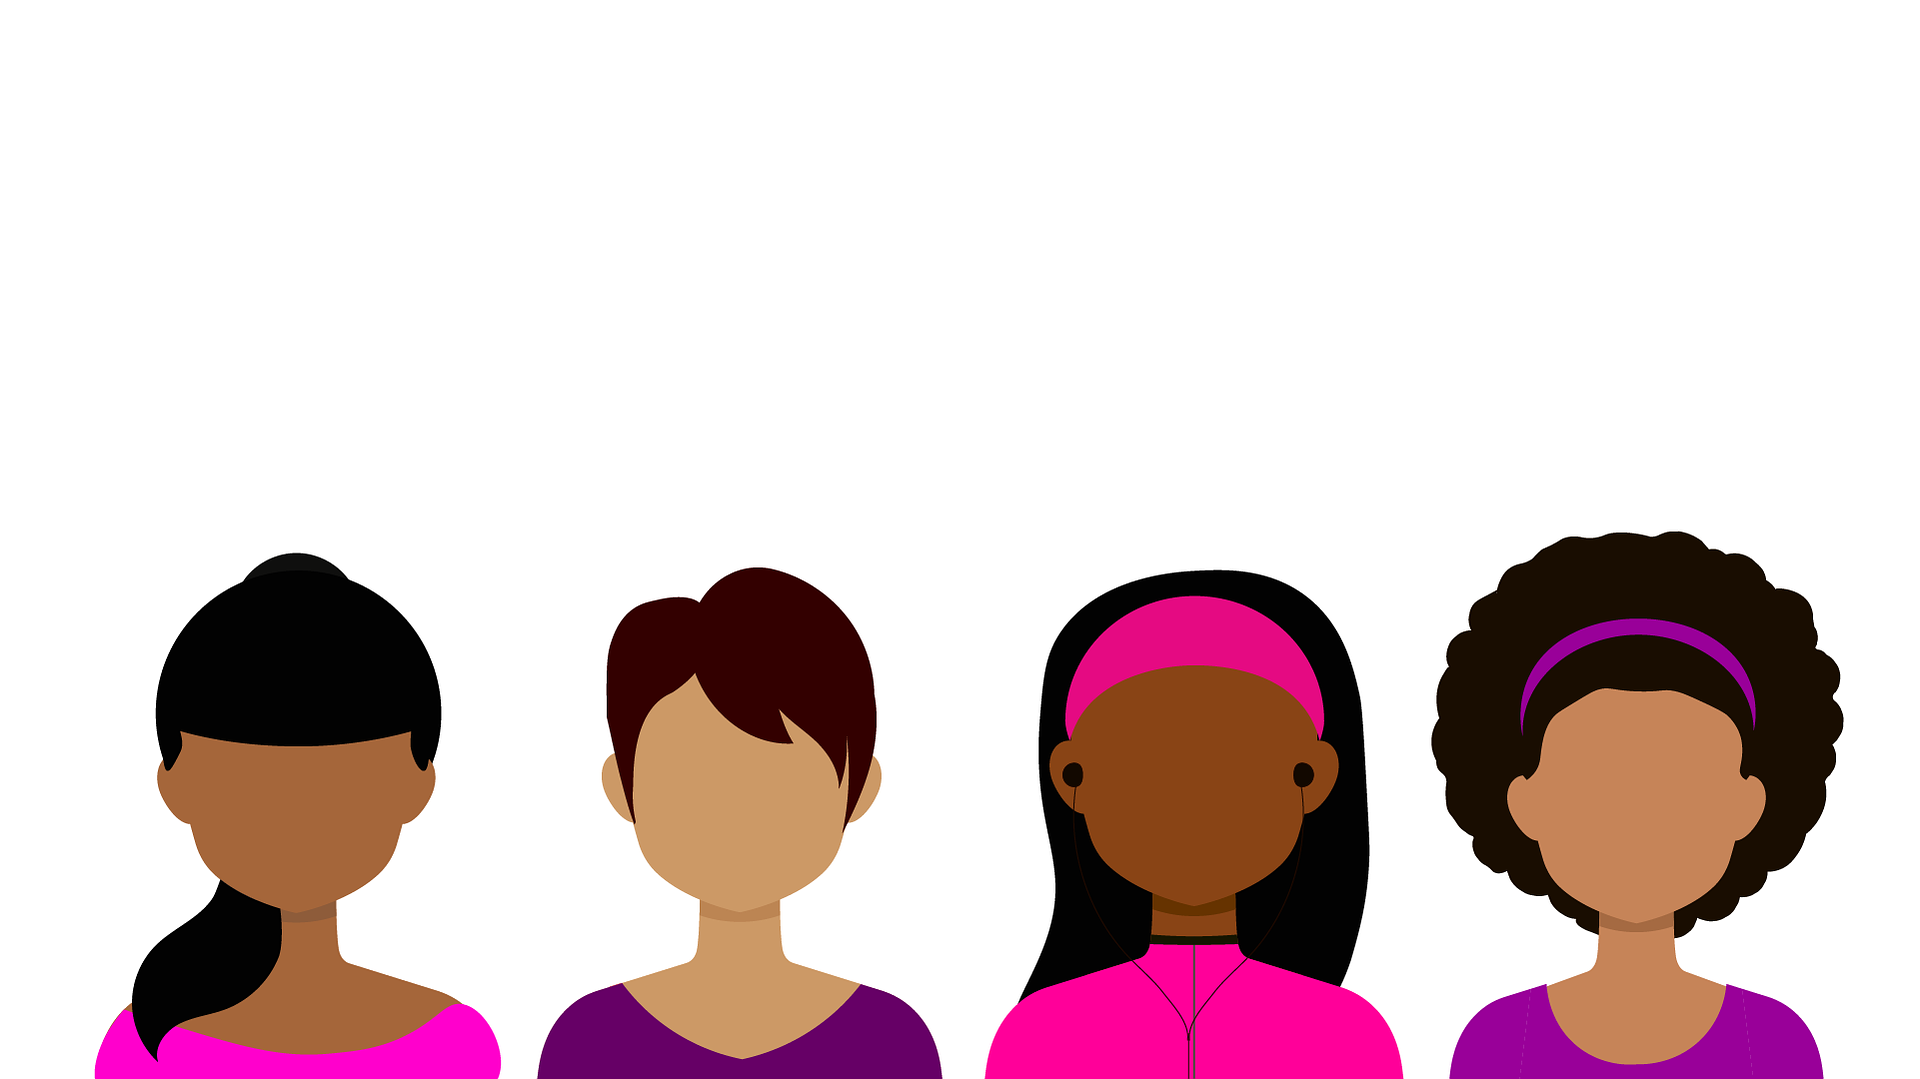 A graphic of several women with different skin tones. Image courtesy of Coffee Bean on Pixabay.